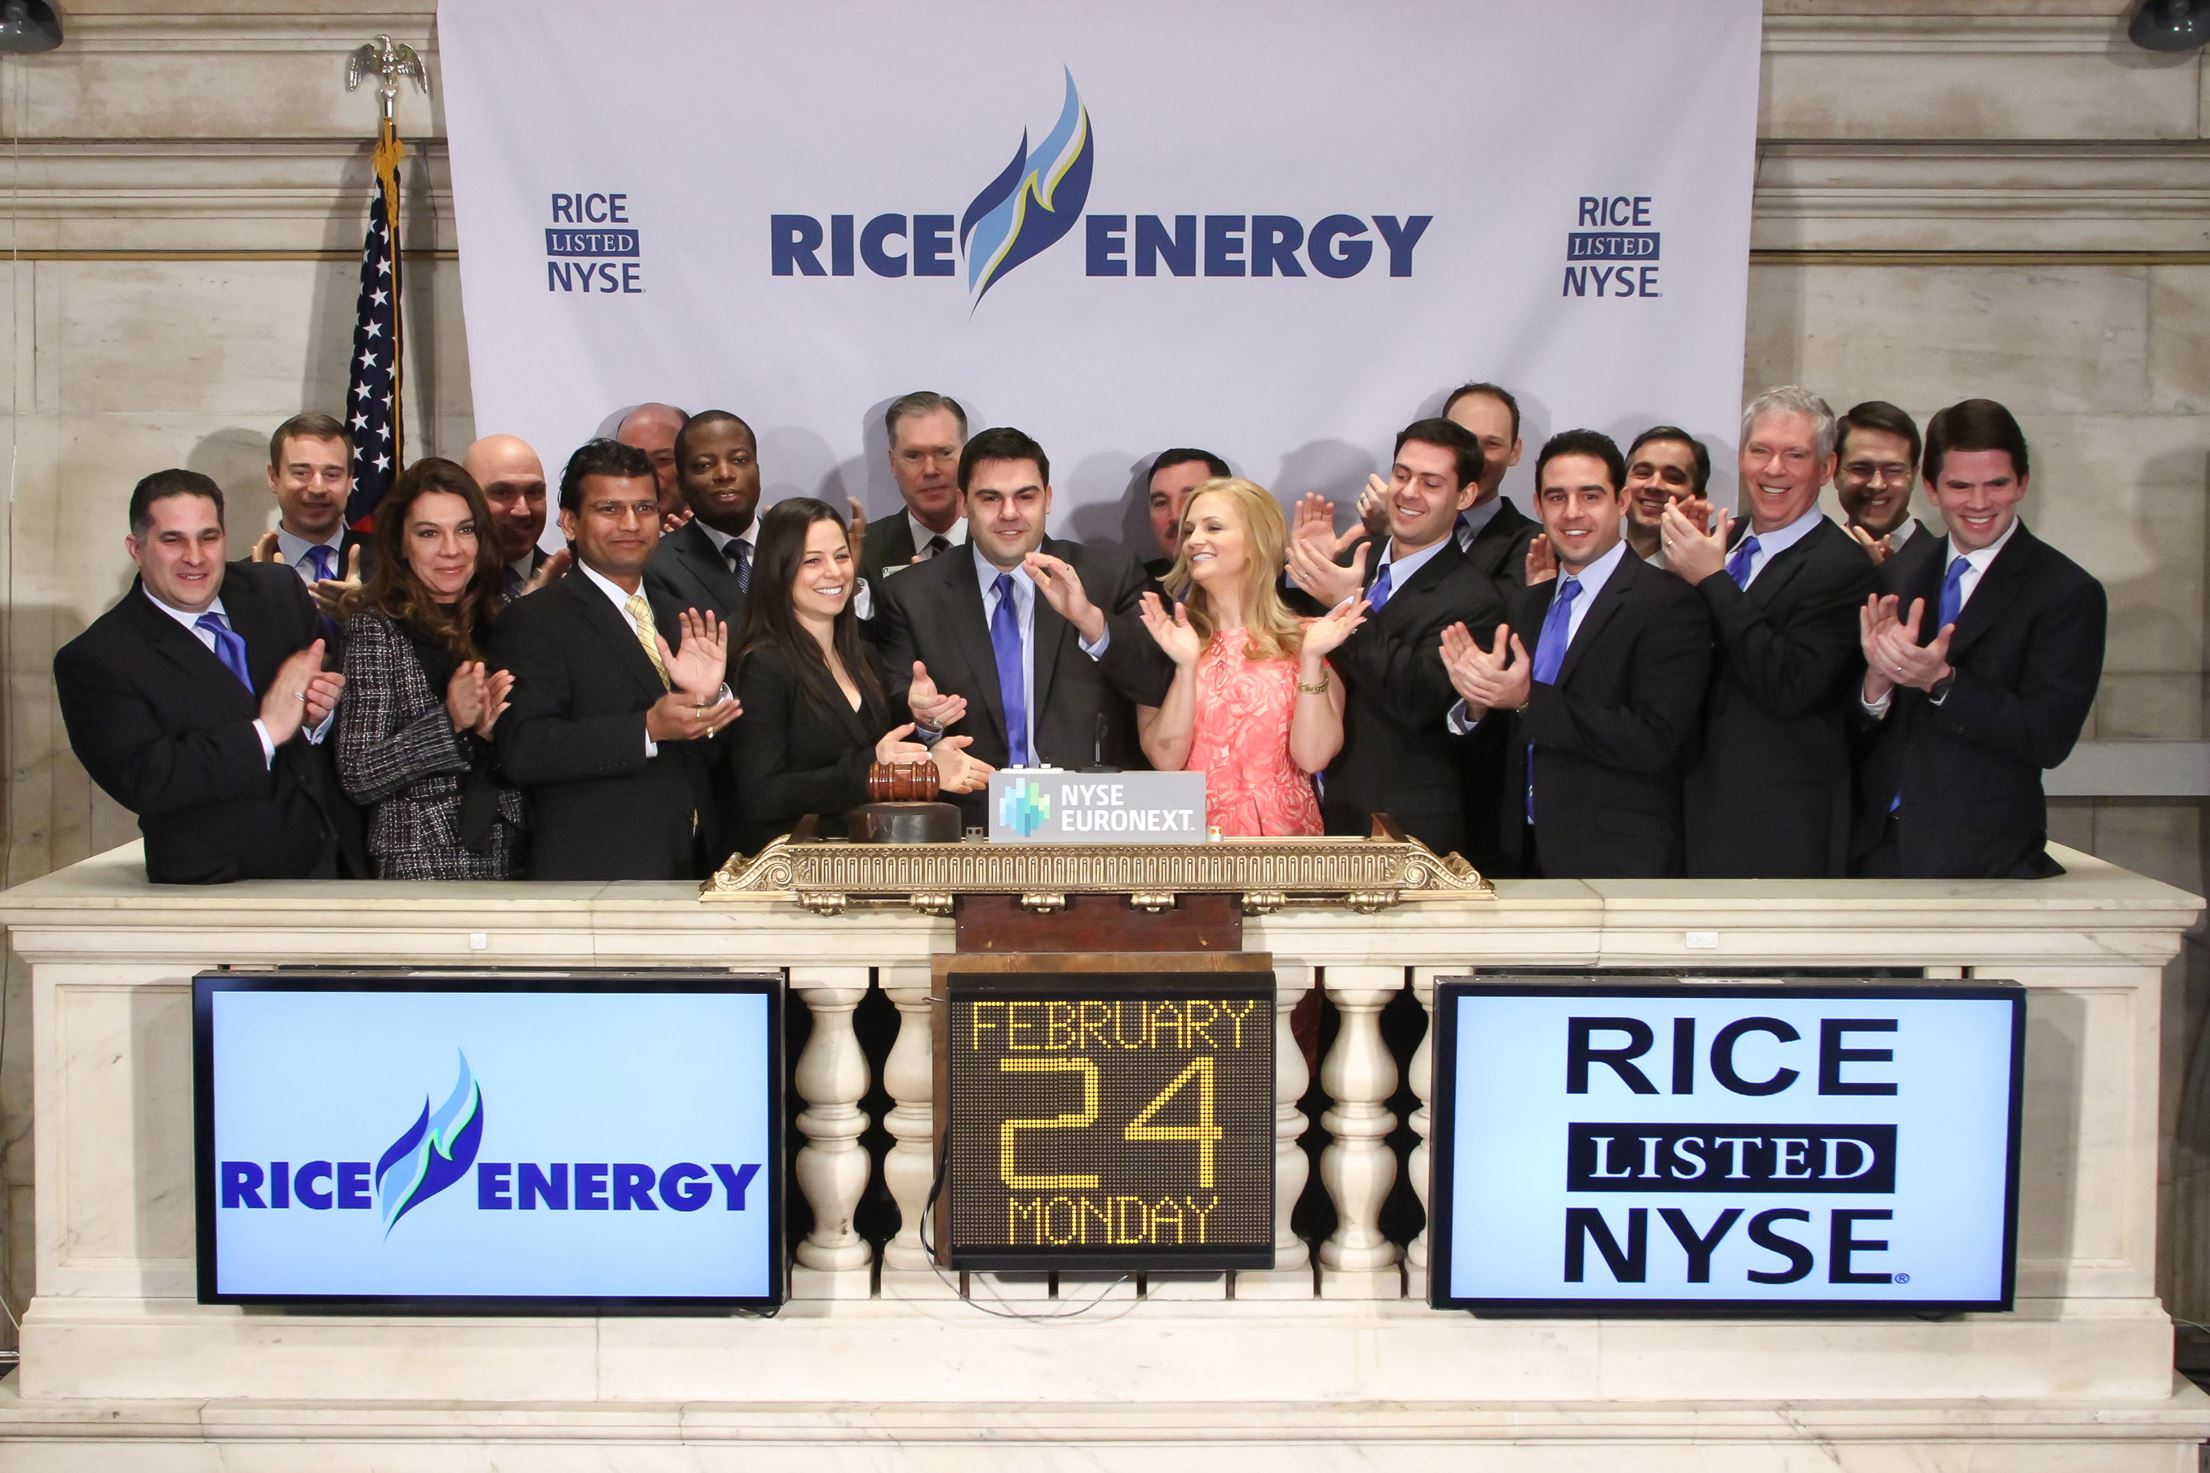 20140401handoutRice Members of the Rice family ring the opening bell at the New York Stock Exchange Feb. 24 in New York.